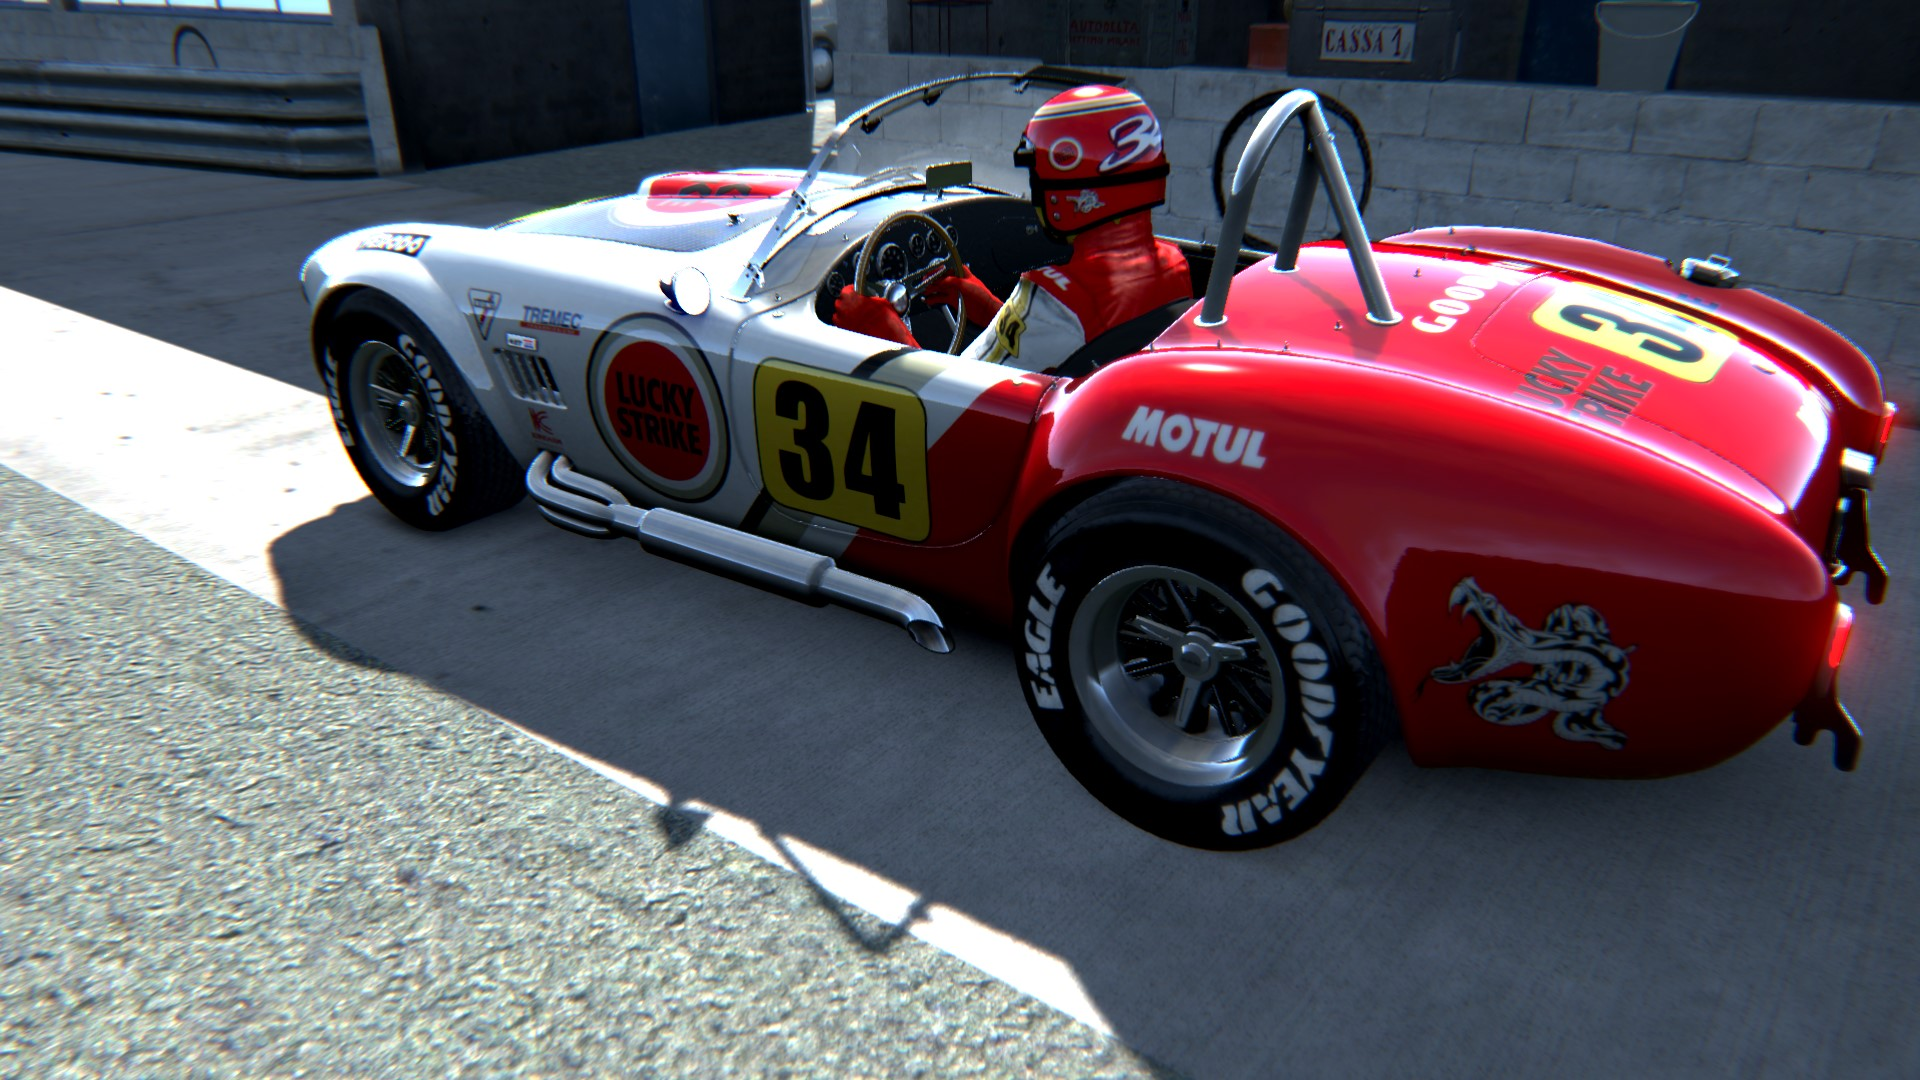 Screenshot_shelby_cobra_monza66_25-9-115-20-2-21.jpg